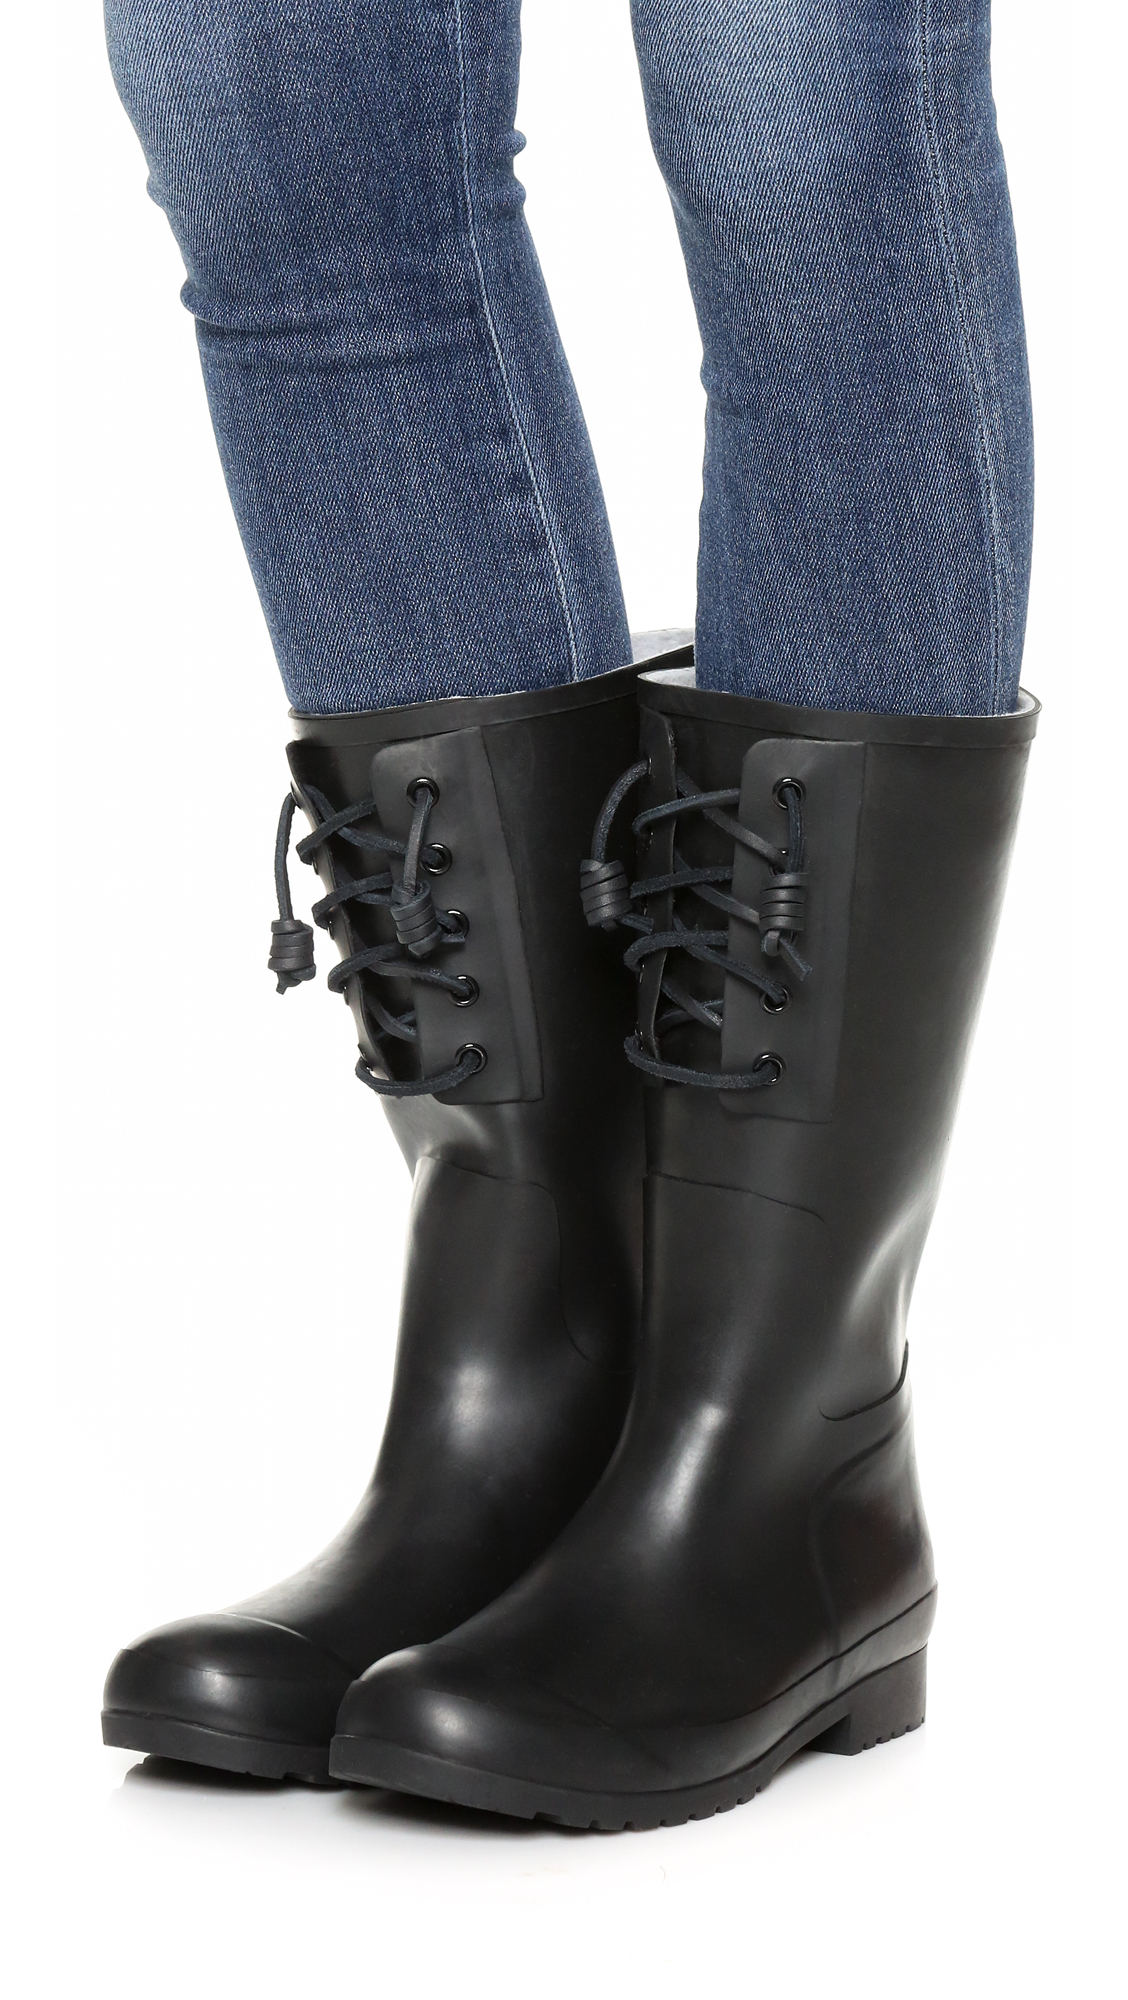 Sperry top-sider Walker Spray Rain Boots in Black | Lyst